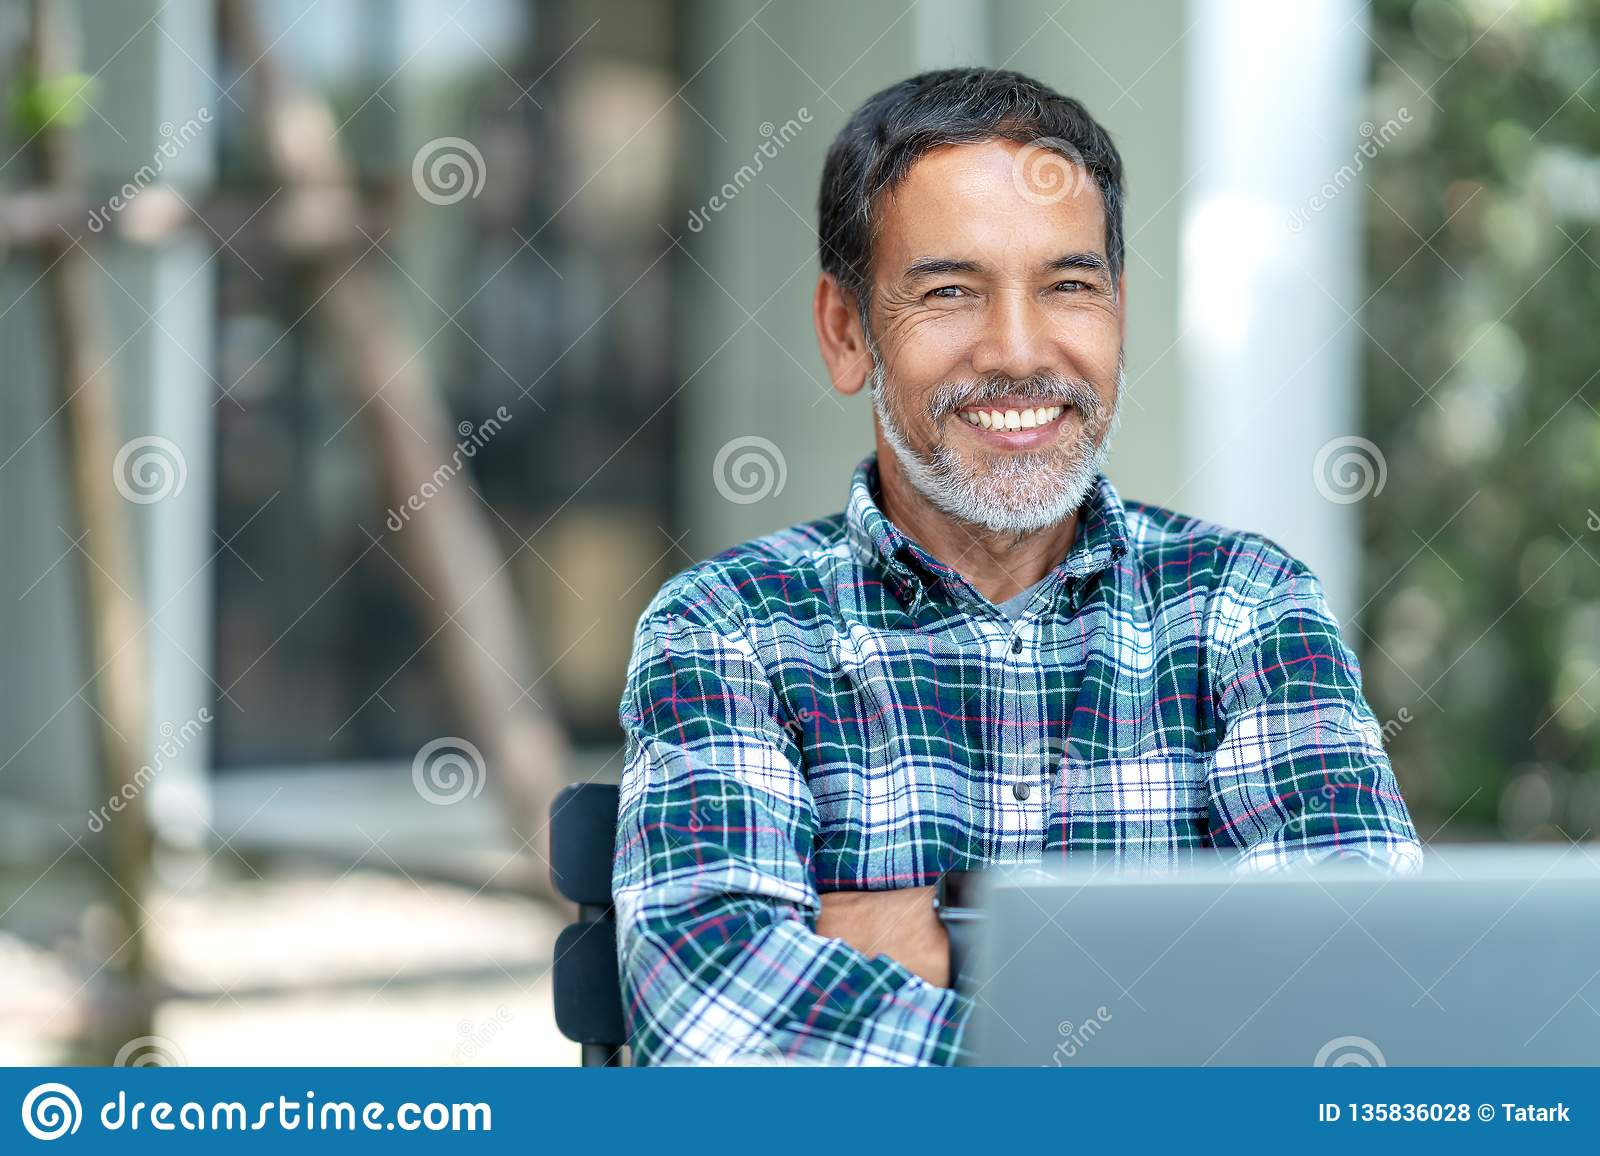 Portrait of happy mature man with white, grey stylish short beard looking at camera outdoor. Casual lifestyle of retired hispanic